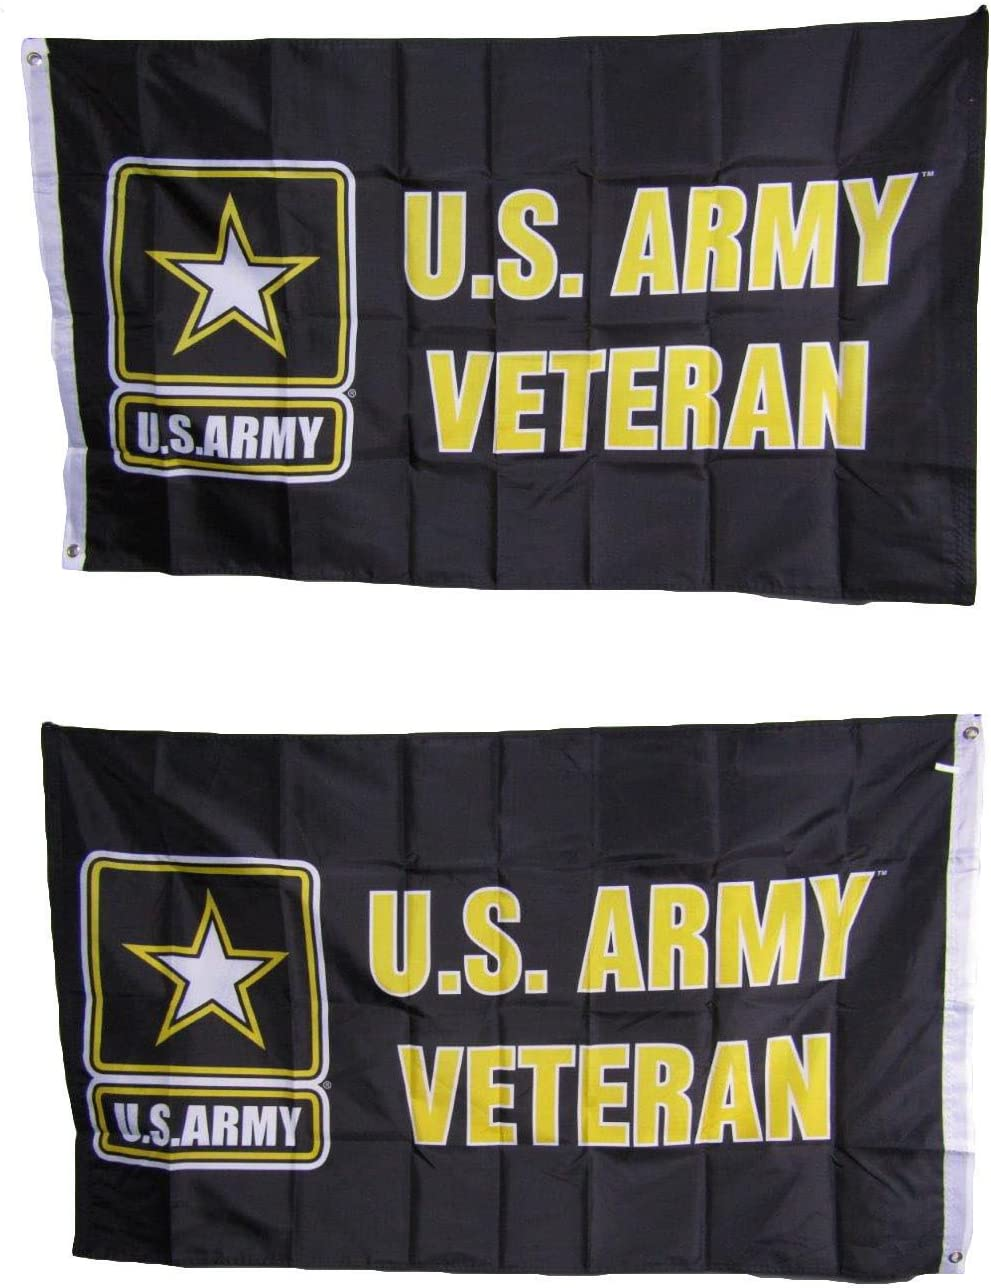 3x5 U.S. Army Veteran Star Heavy Duty Polyester Nylon 200D Double Sided Flag 3'x5' Banner Brass Grommets UV Resistant Premium Quality Double Stitched Canvas Header.